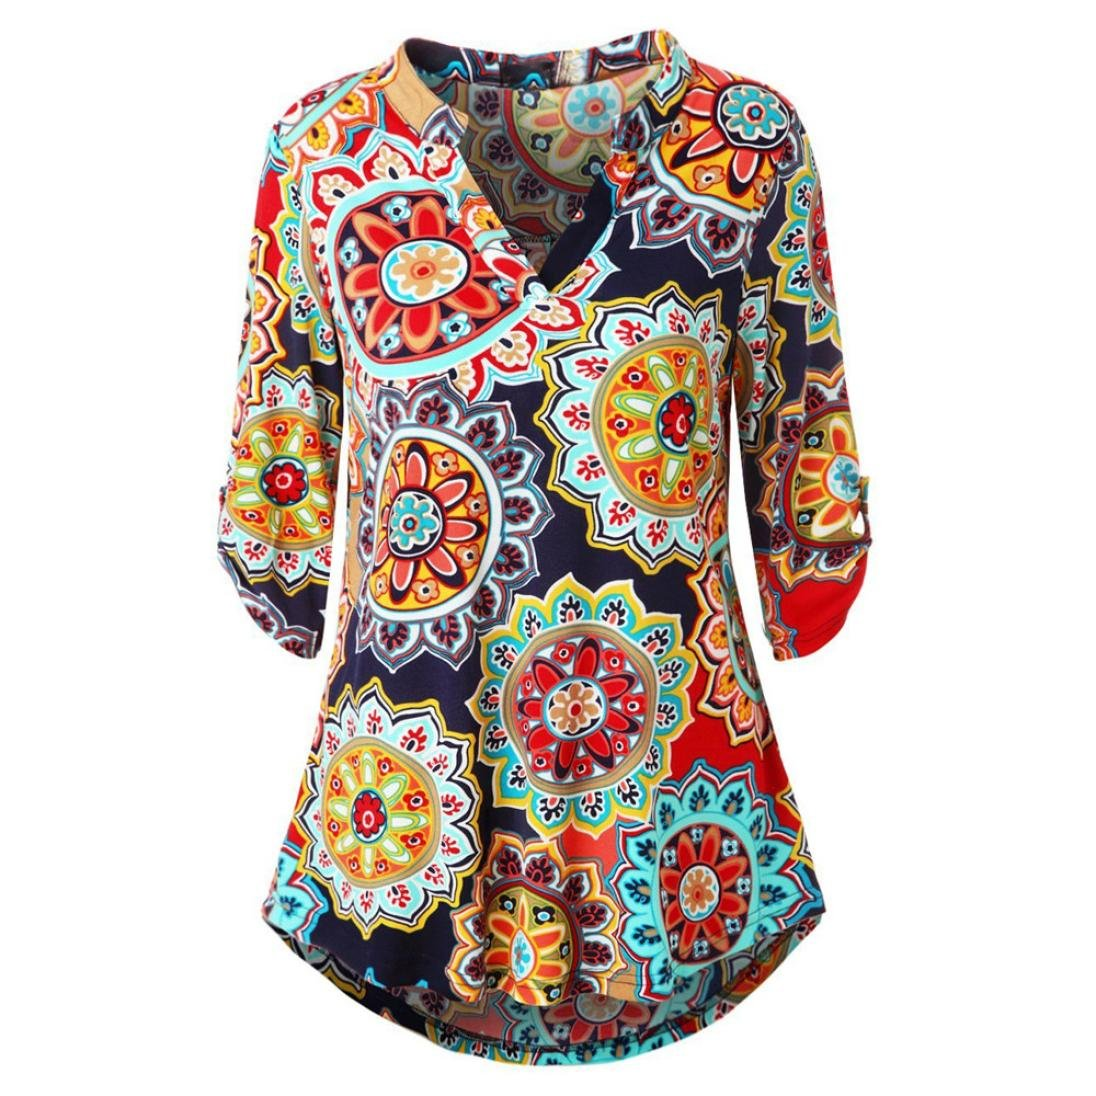 Clearance Women Casual V Neck Floral Irregular Tunic T-Shirt Blouse Tops 6-10